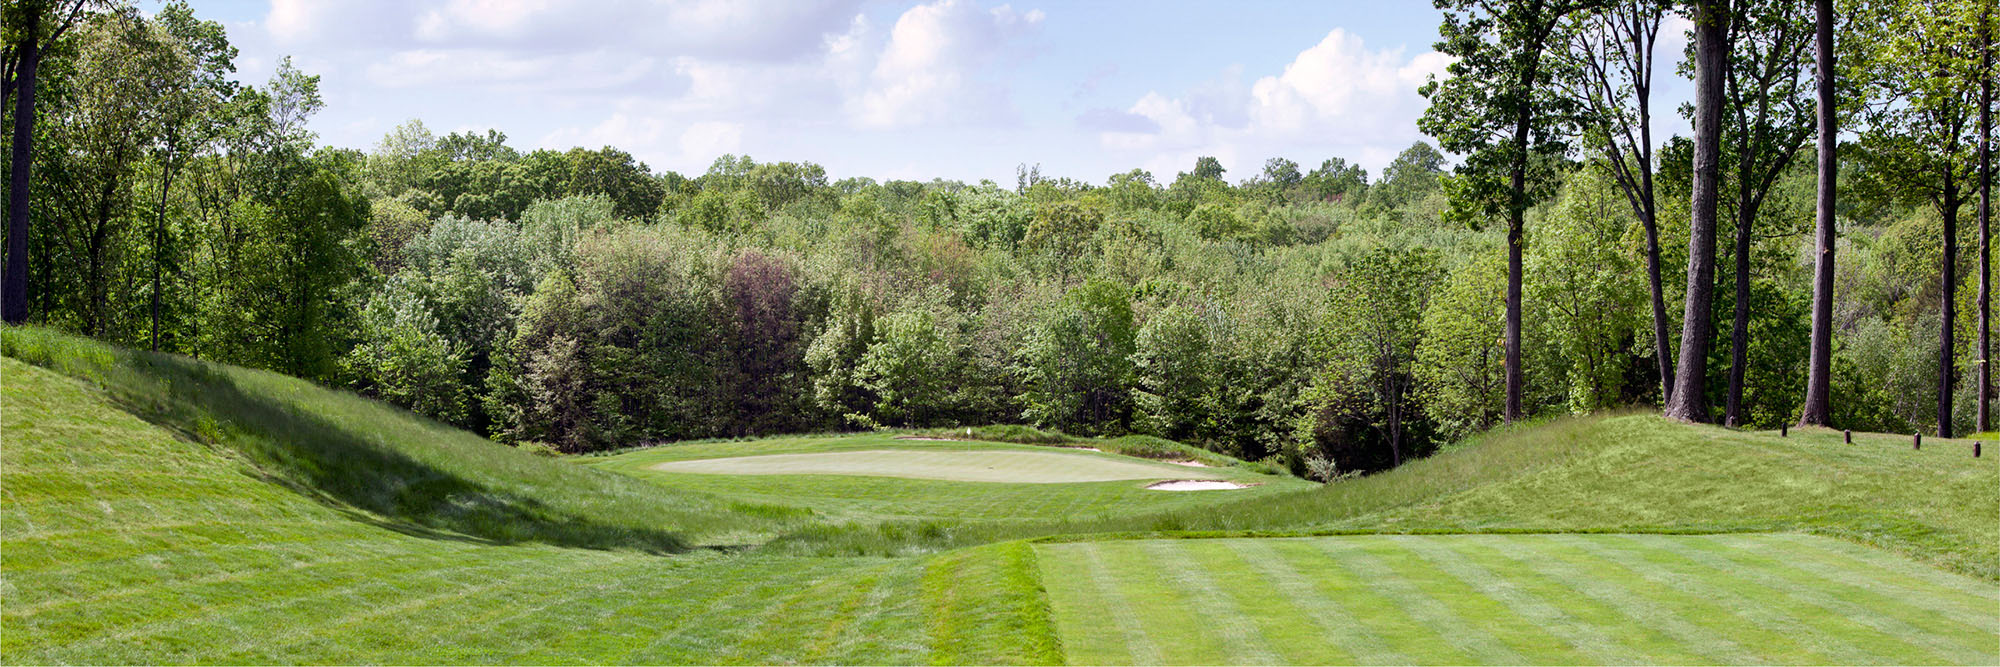 Golf Course Image - New Jersey National Golf Club No. 4